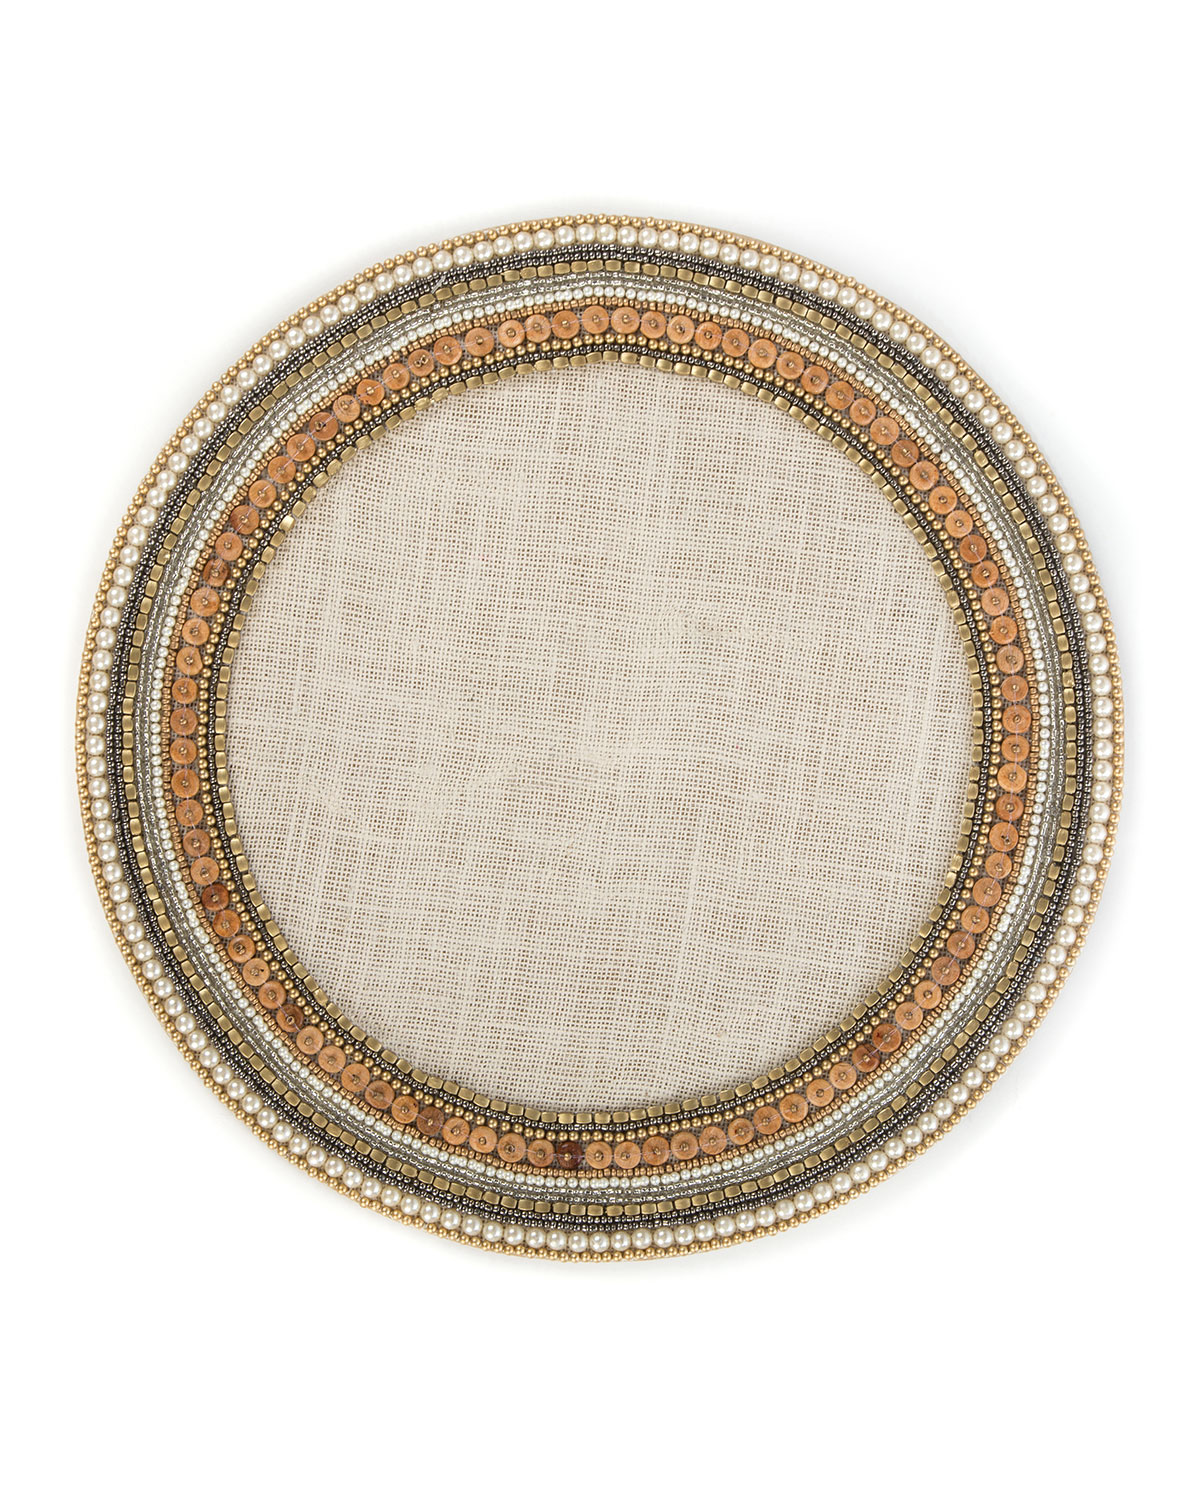 Jeweled Circle Placemat